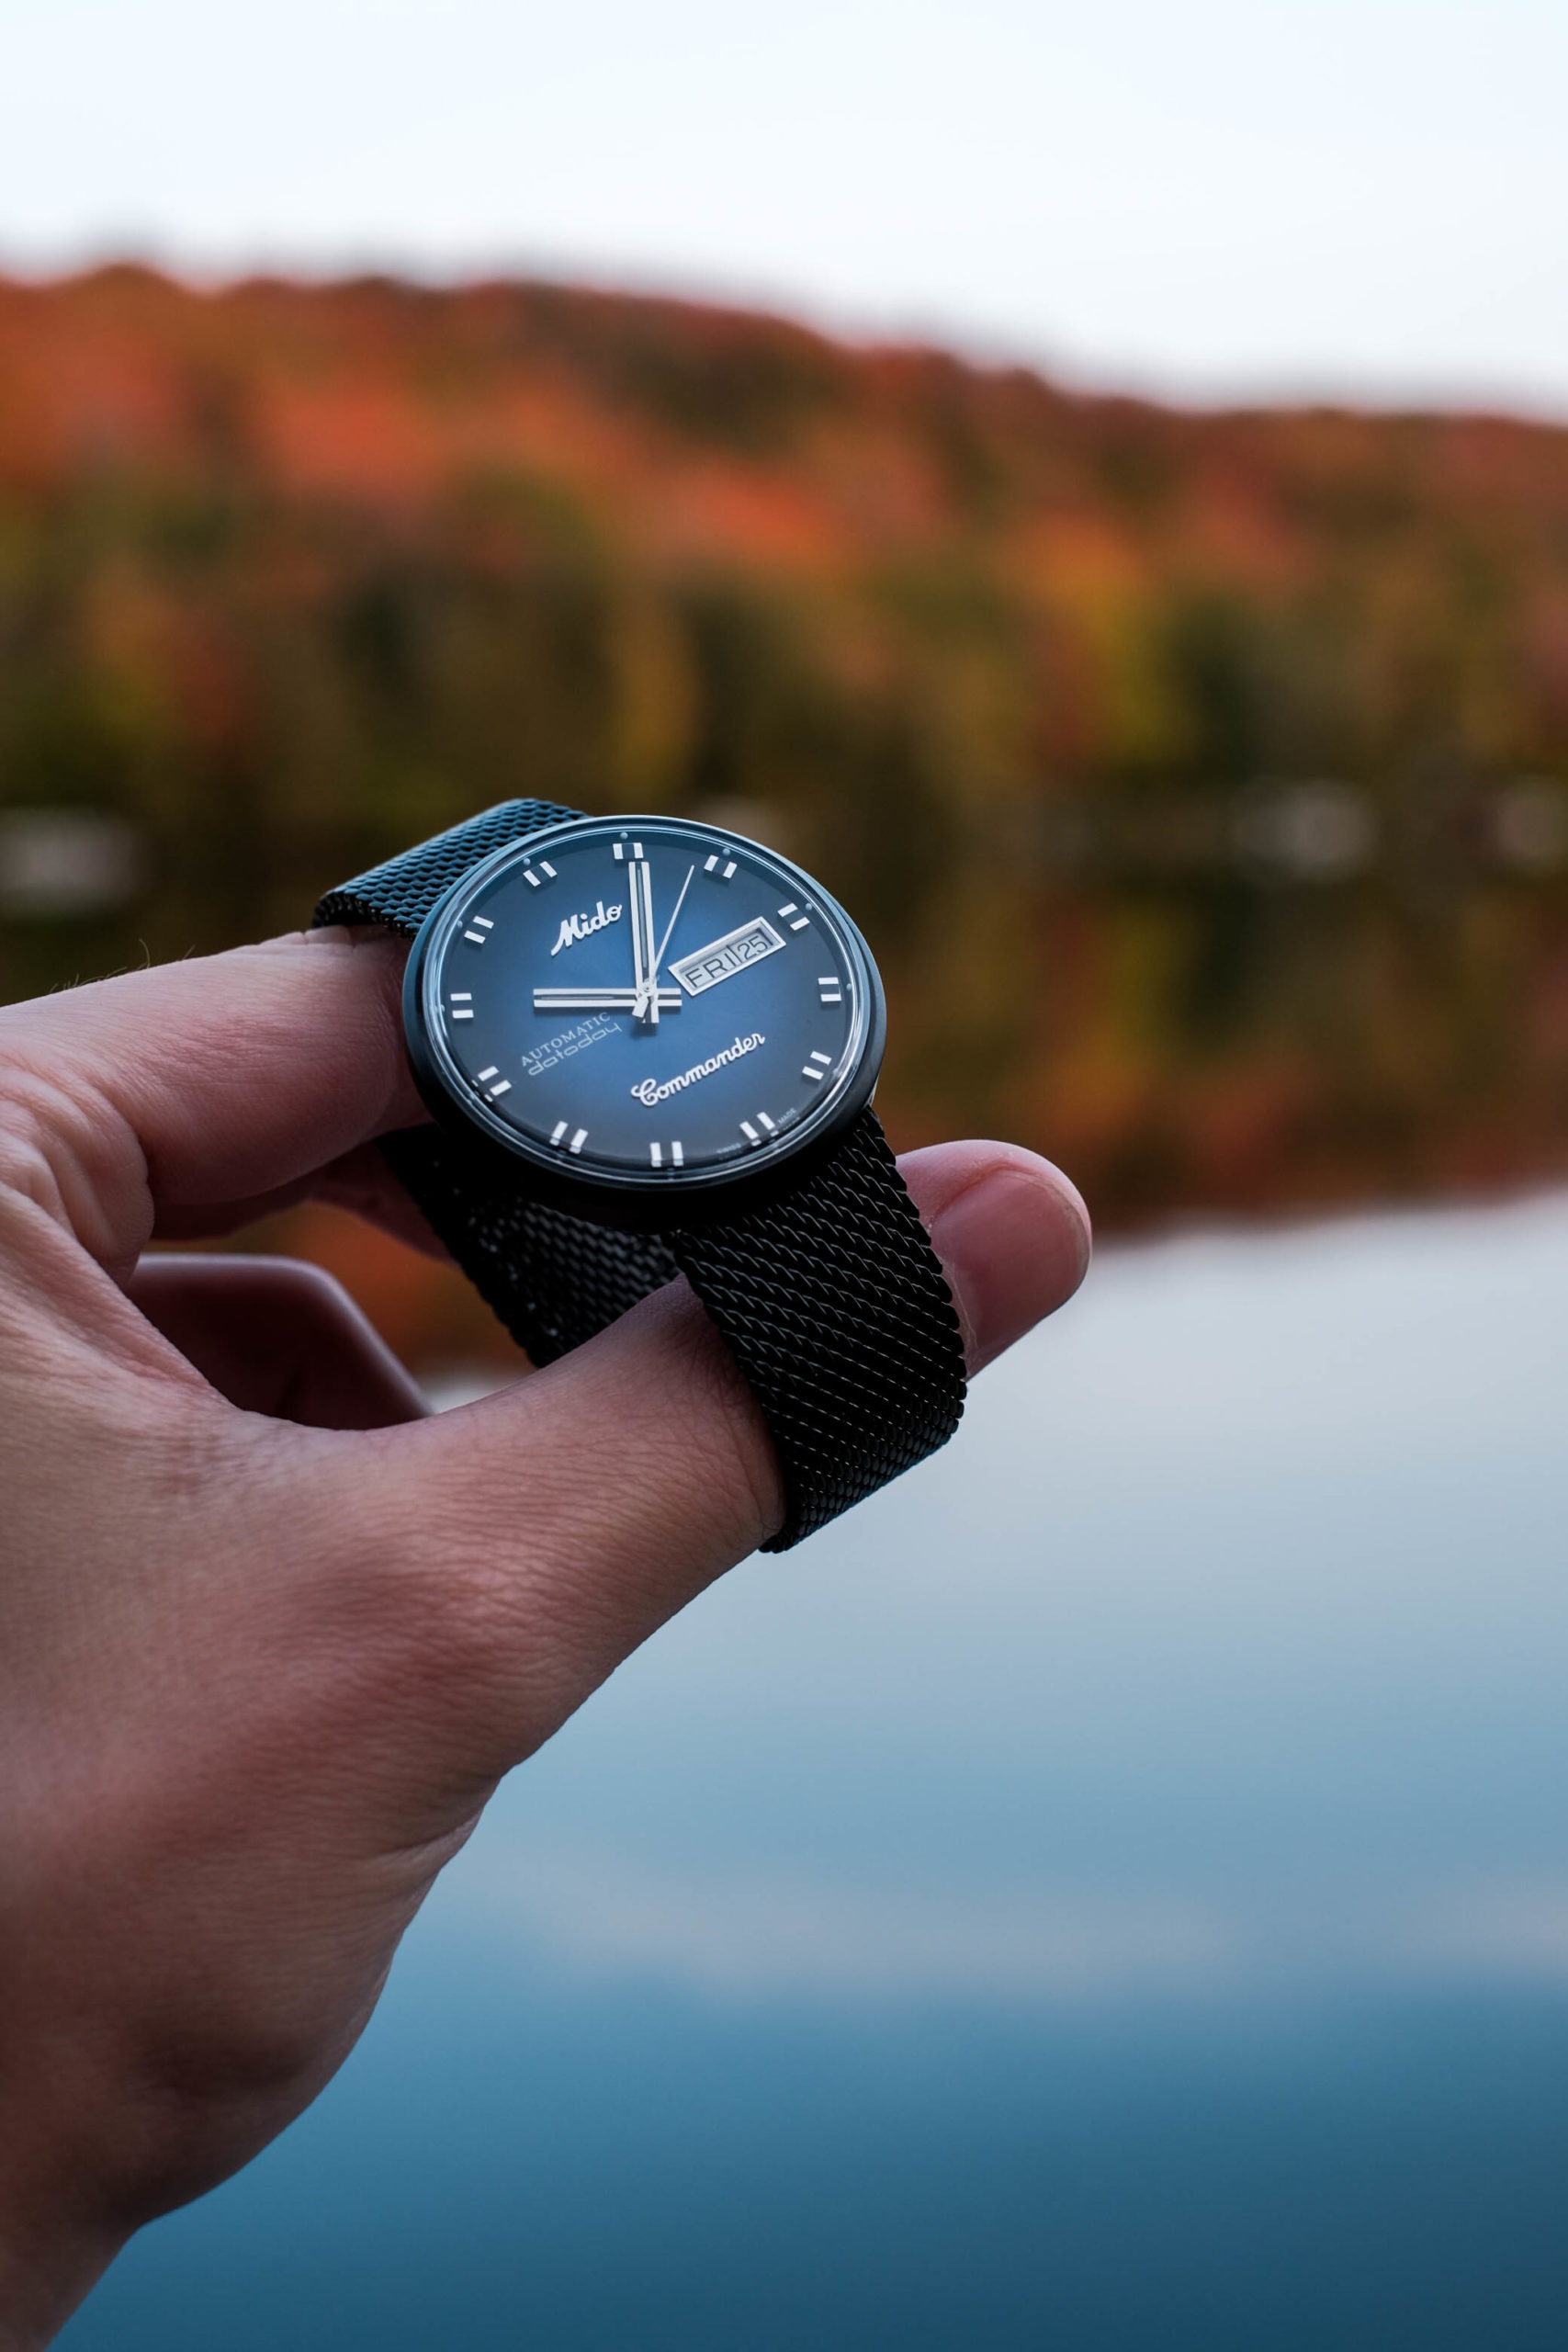 The commander blue shade with autumn backdrop